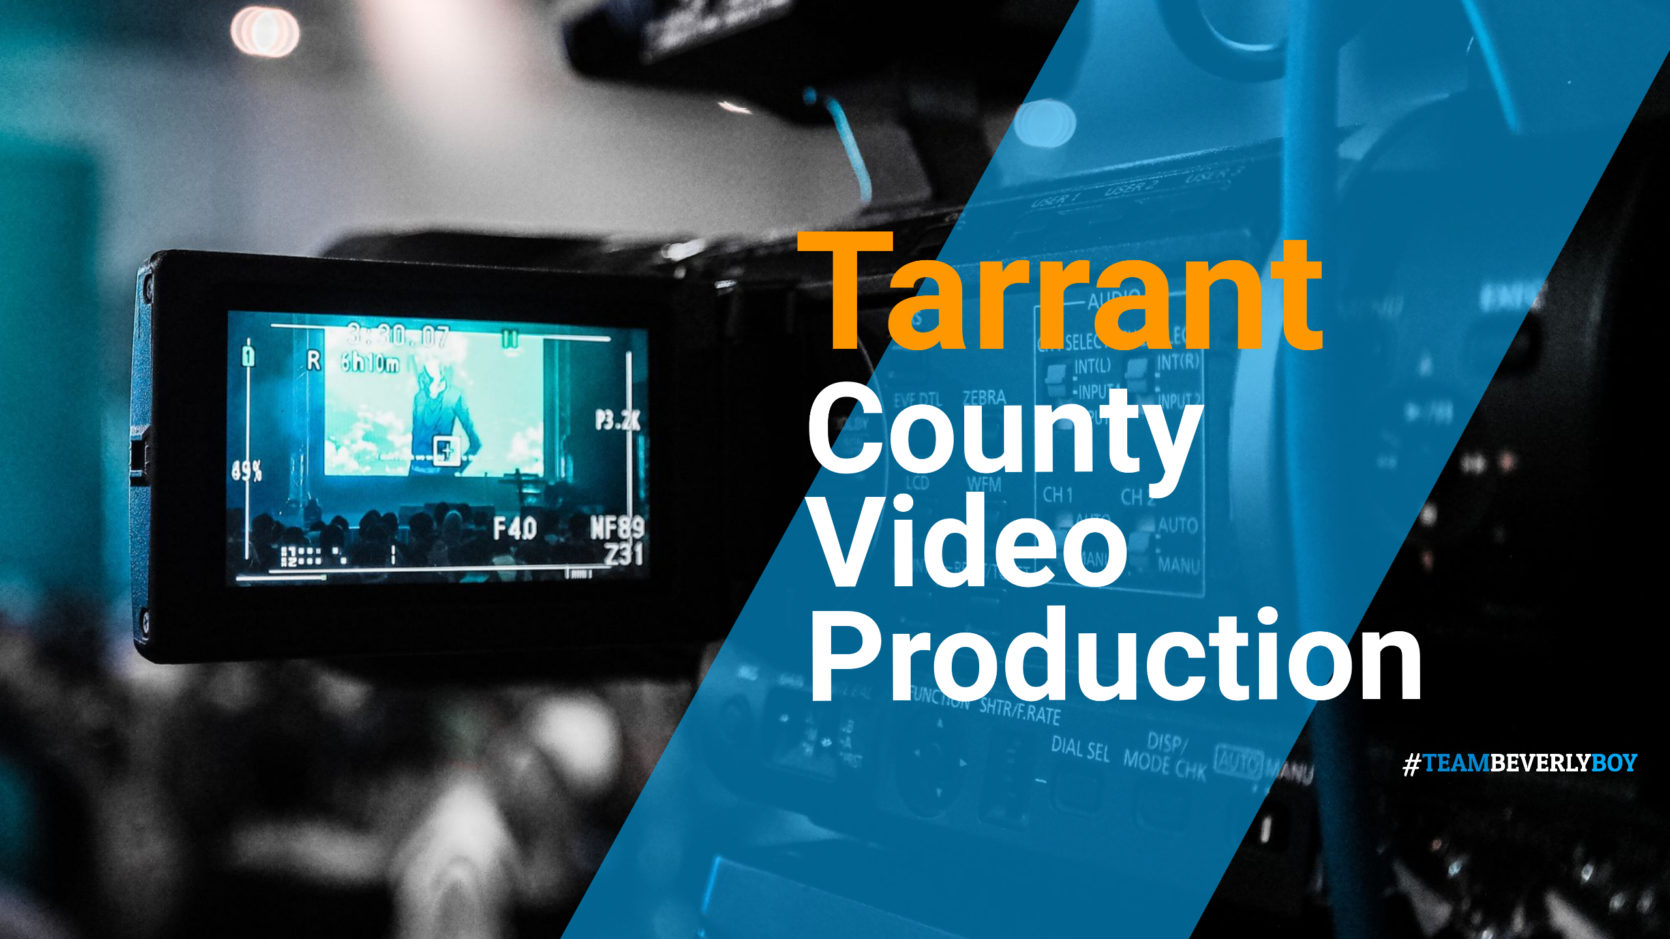 Tarrant County Video Production